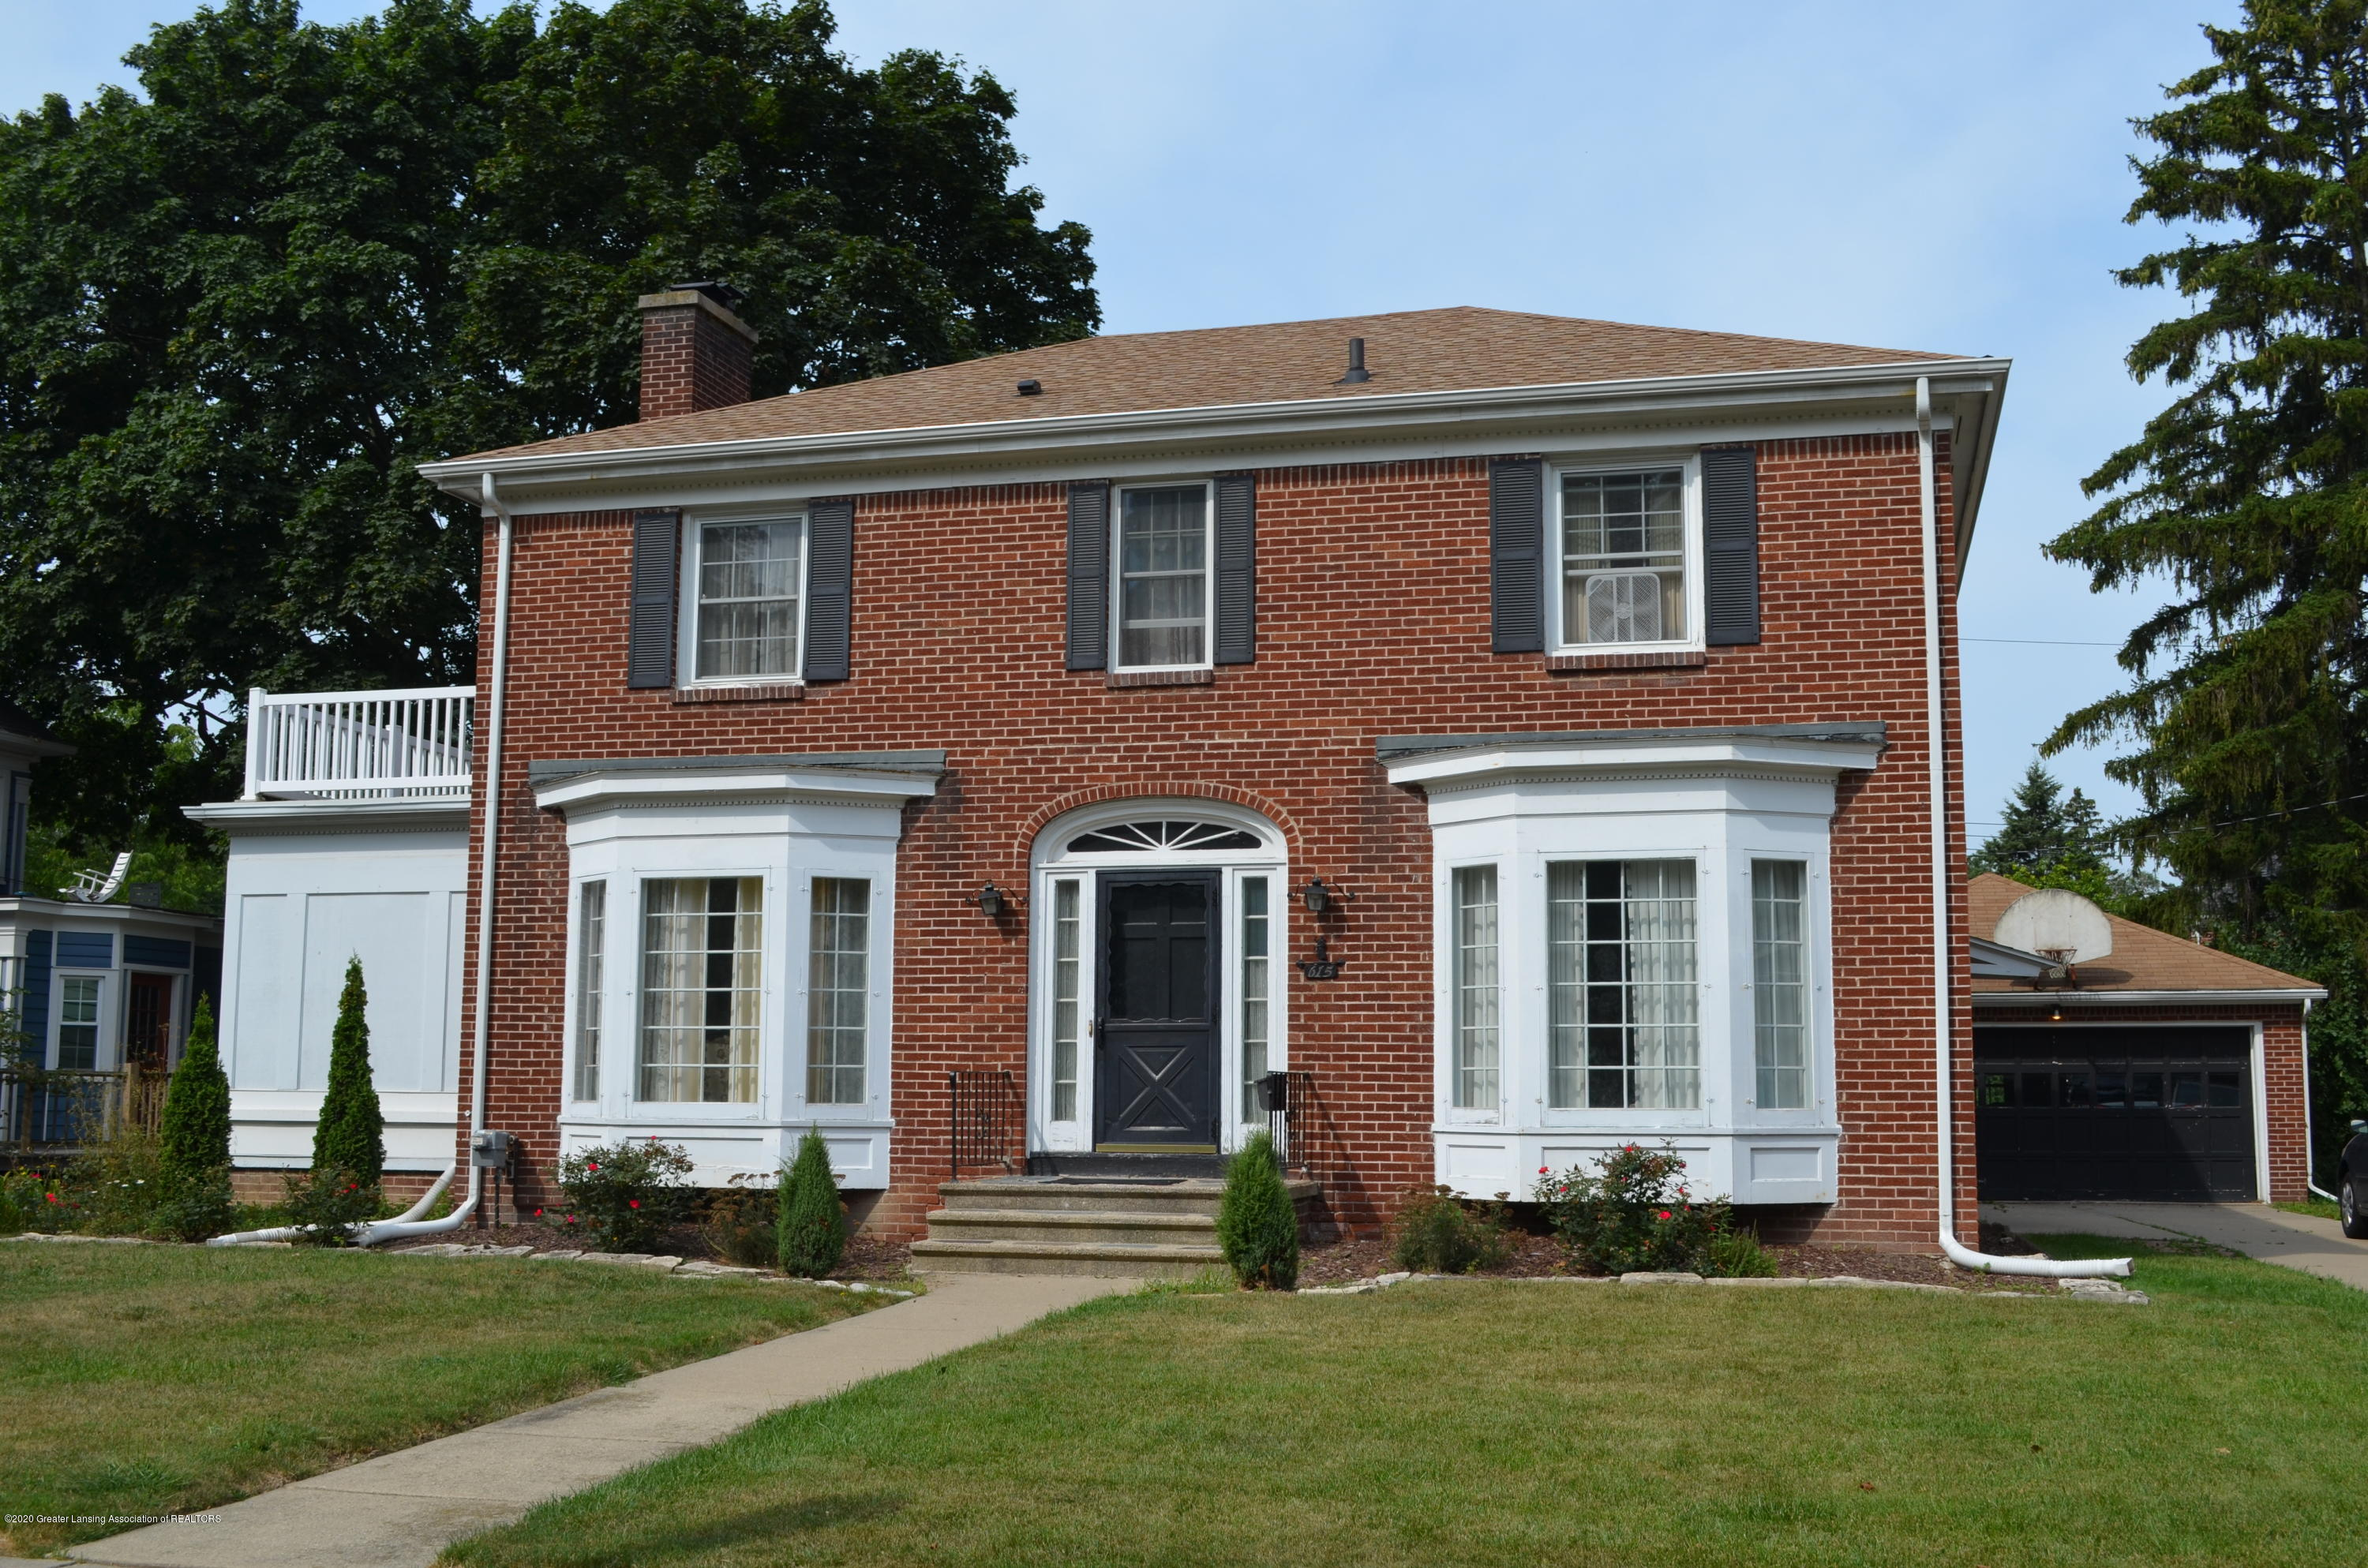 615 Bailey St - Front View - 1